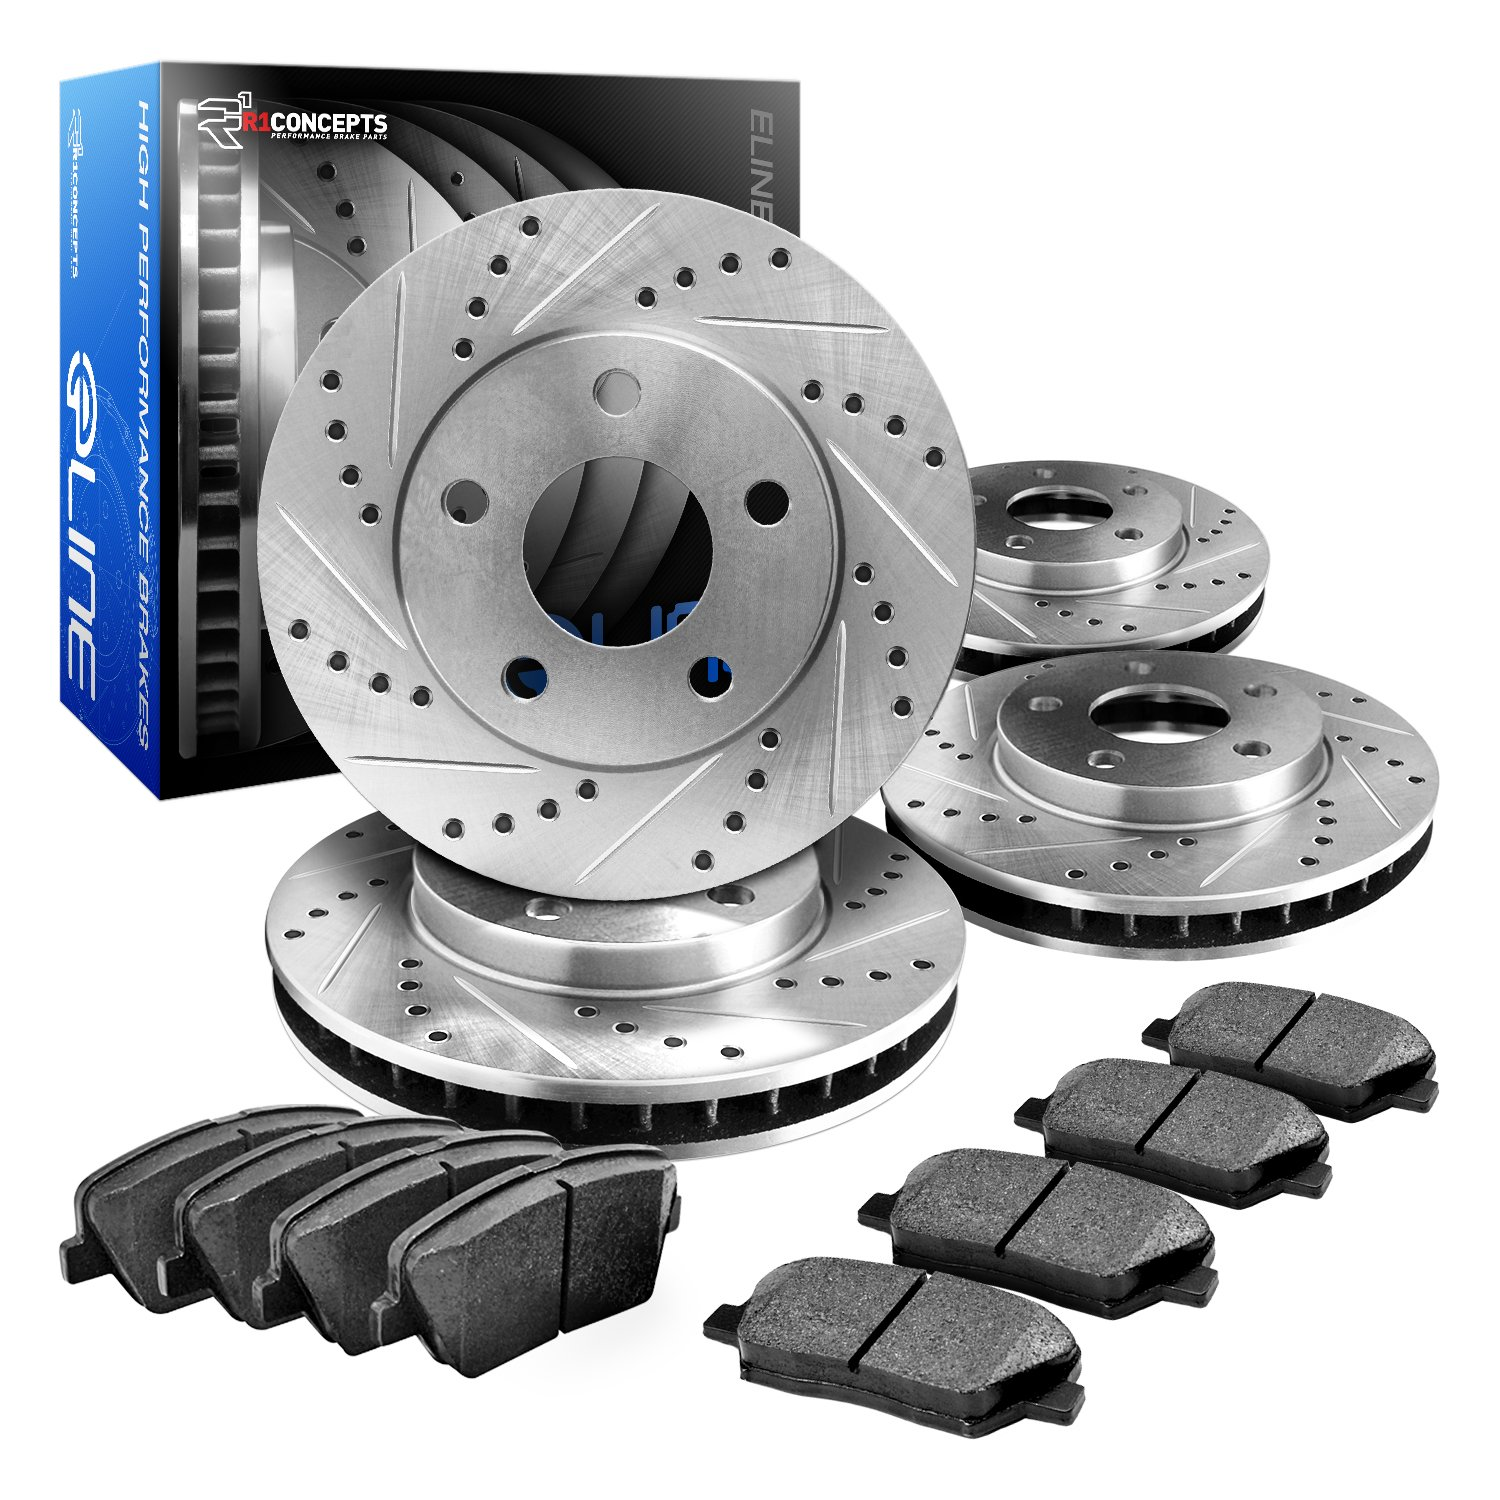 R1 Concepts CEDS10678 Eline Series Cross-Drilled Slotted Rotors And Ceramic Pads Kit - Front and Rear by R1 Concepts